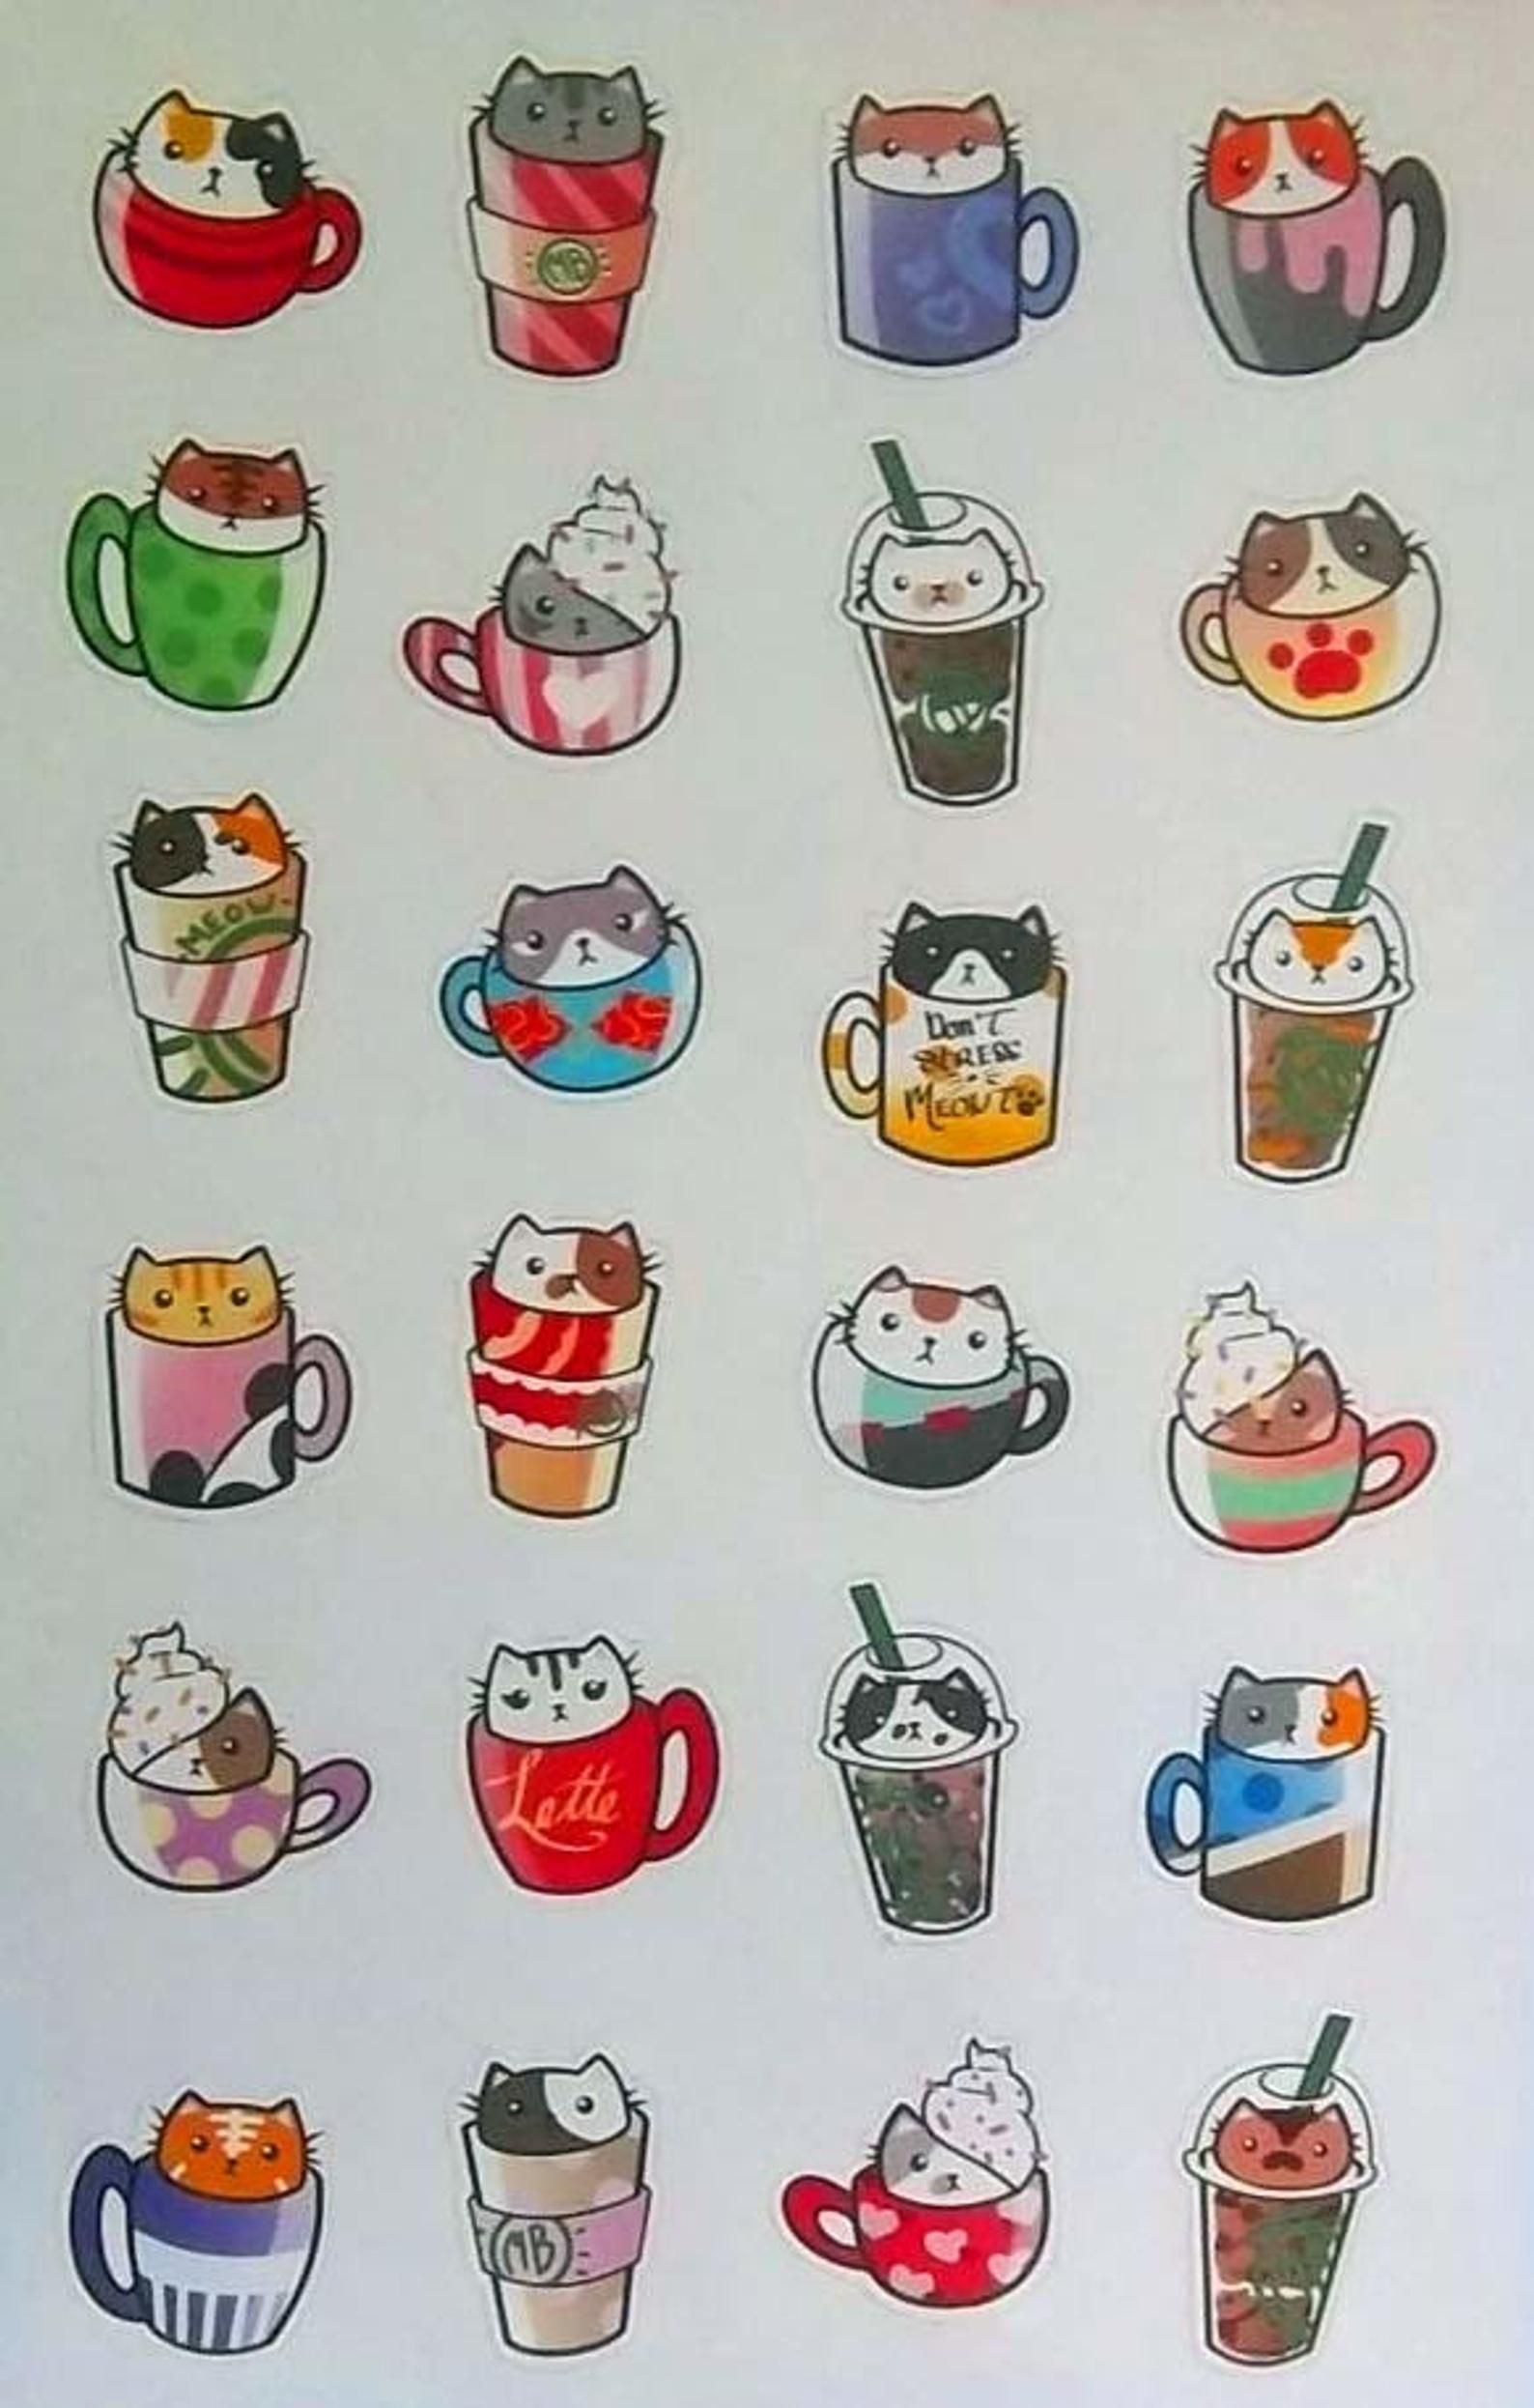 Coffee Cat Planner Stickers! Cat-puccino! Cute Coffee and Cats Stickers! Kawaii Coffee Cat Stickers! Bullet Journal Stickers